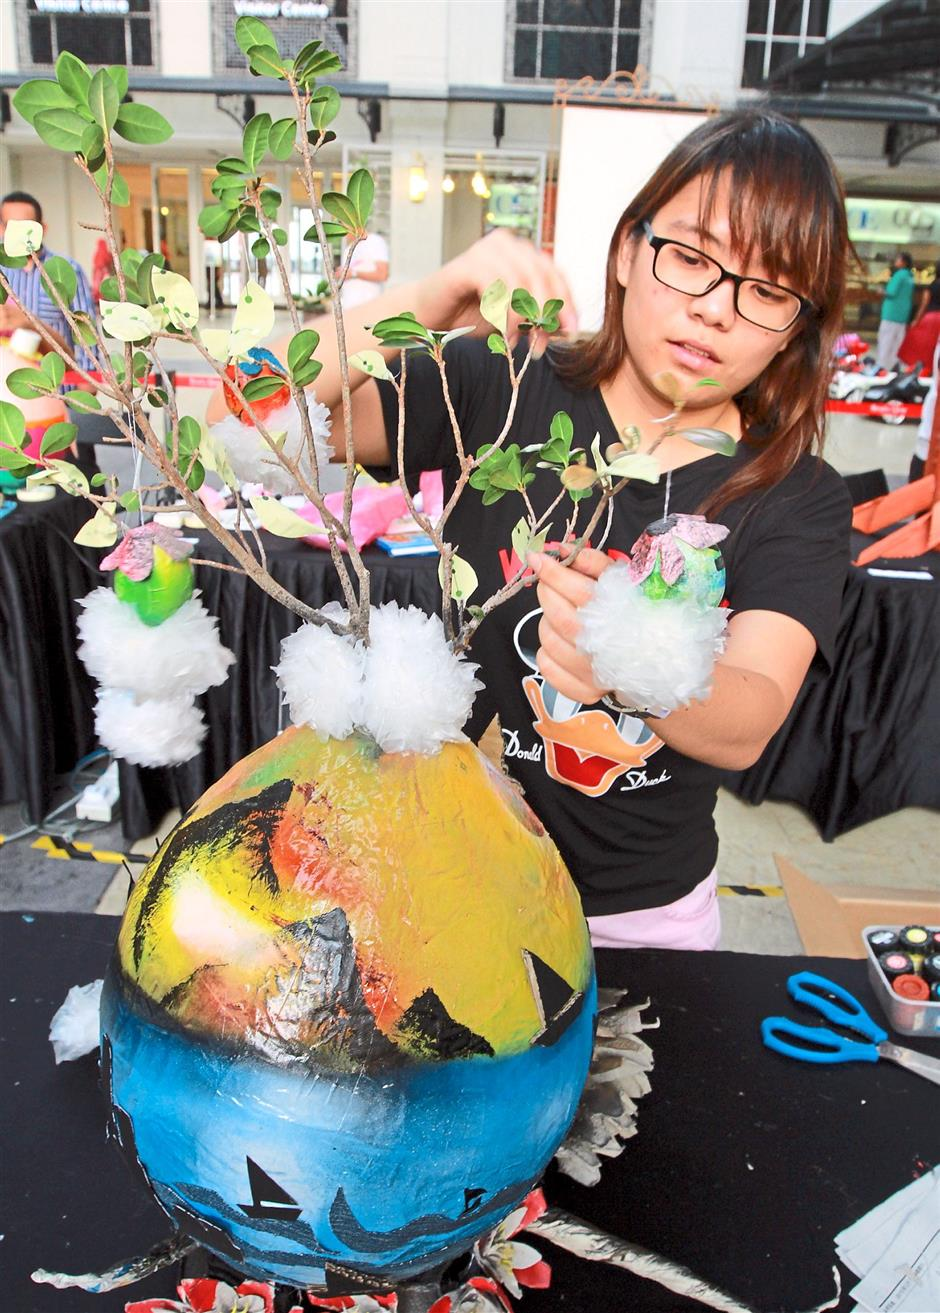 Giant Easter egg design competition entry at Straits Quay Retail Marina on 21/03/15 (CHARLES MARIASOOSAY/ The Star/21/Mac/2015)